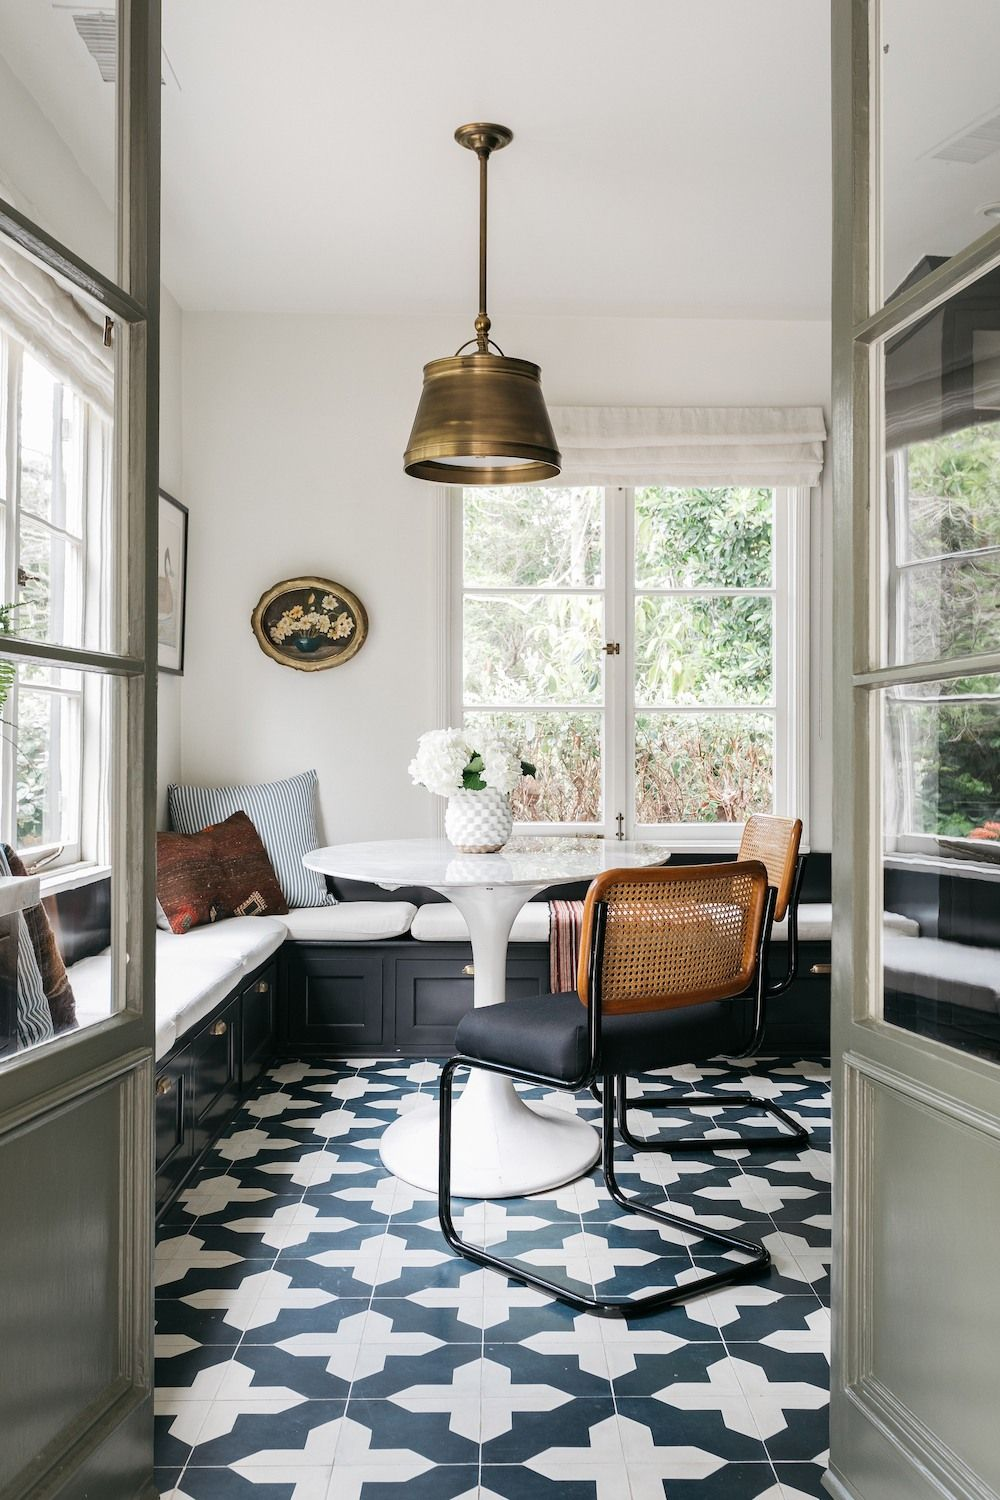 Photo of 5 Paint Updates to Make Before Putting Your Home on the Market